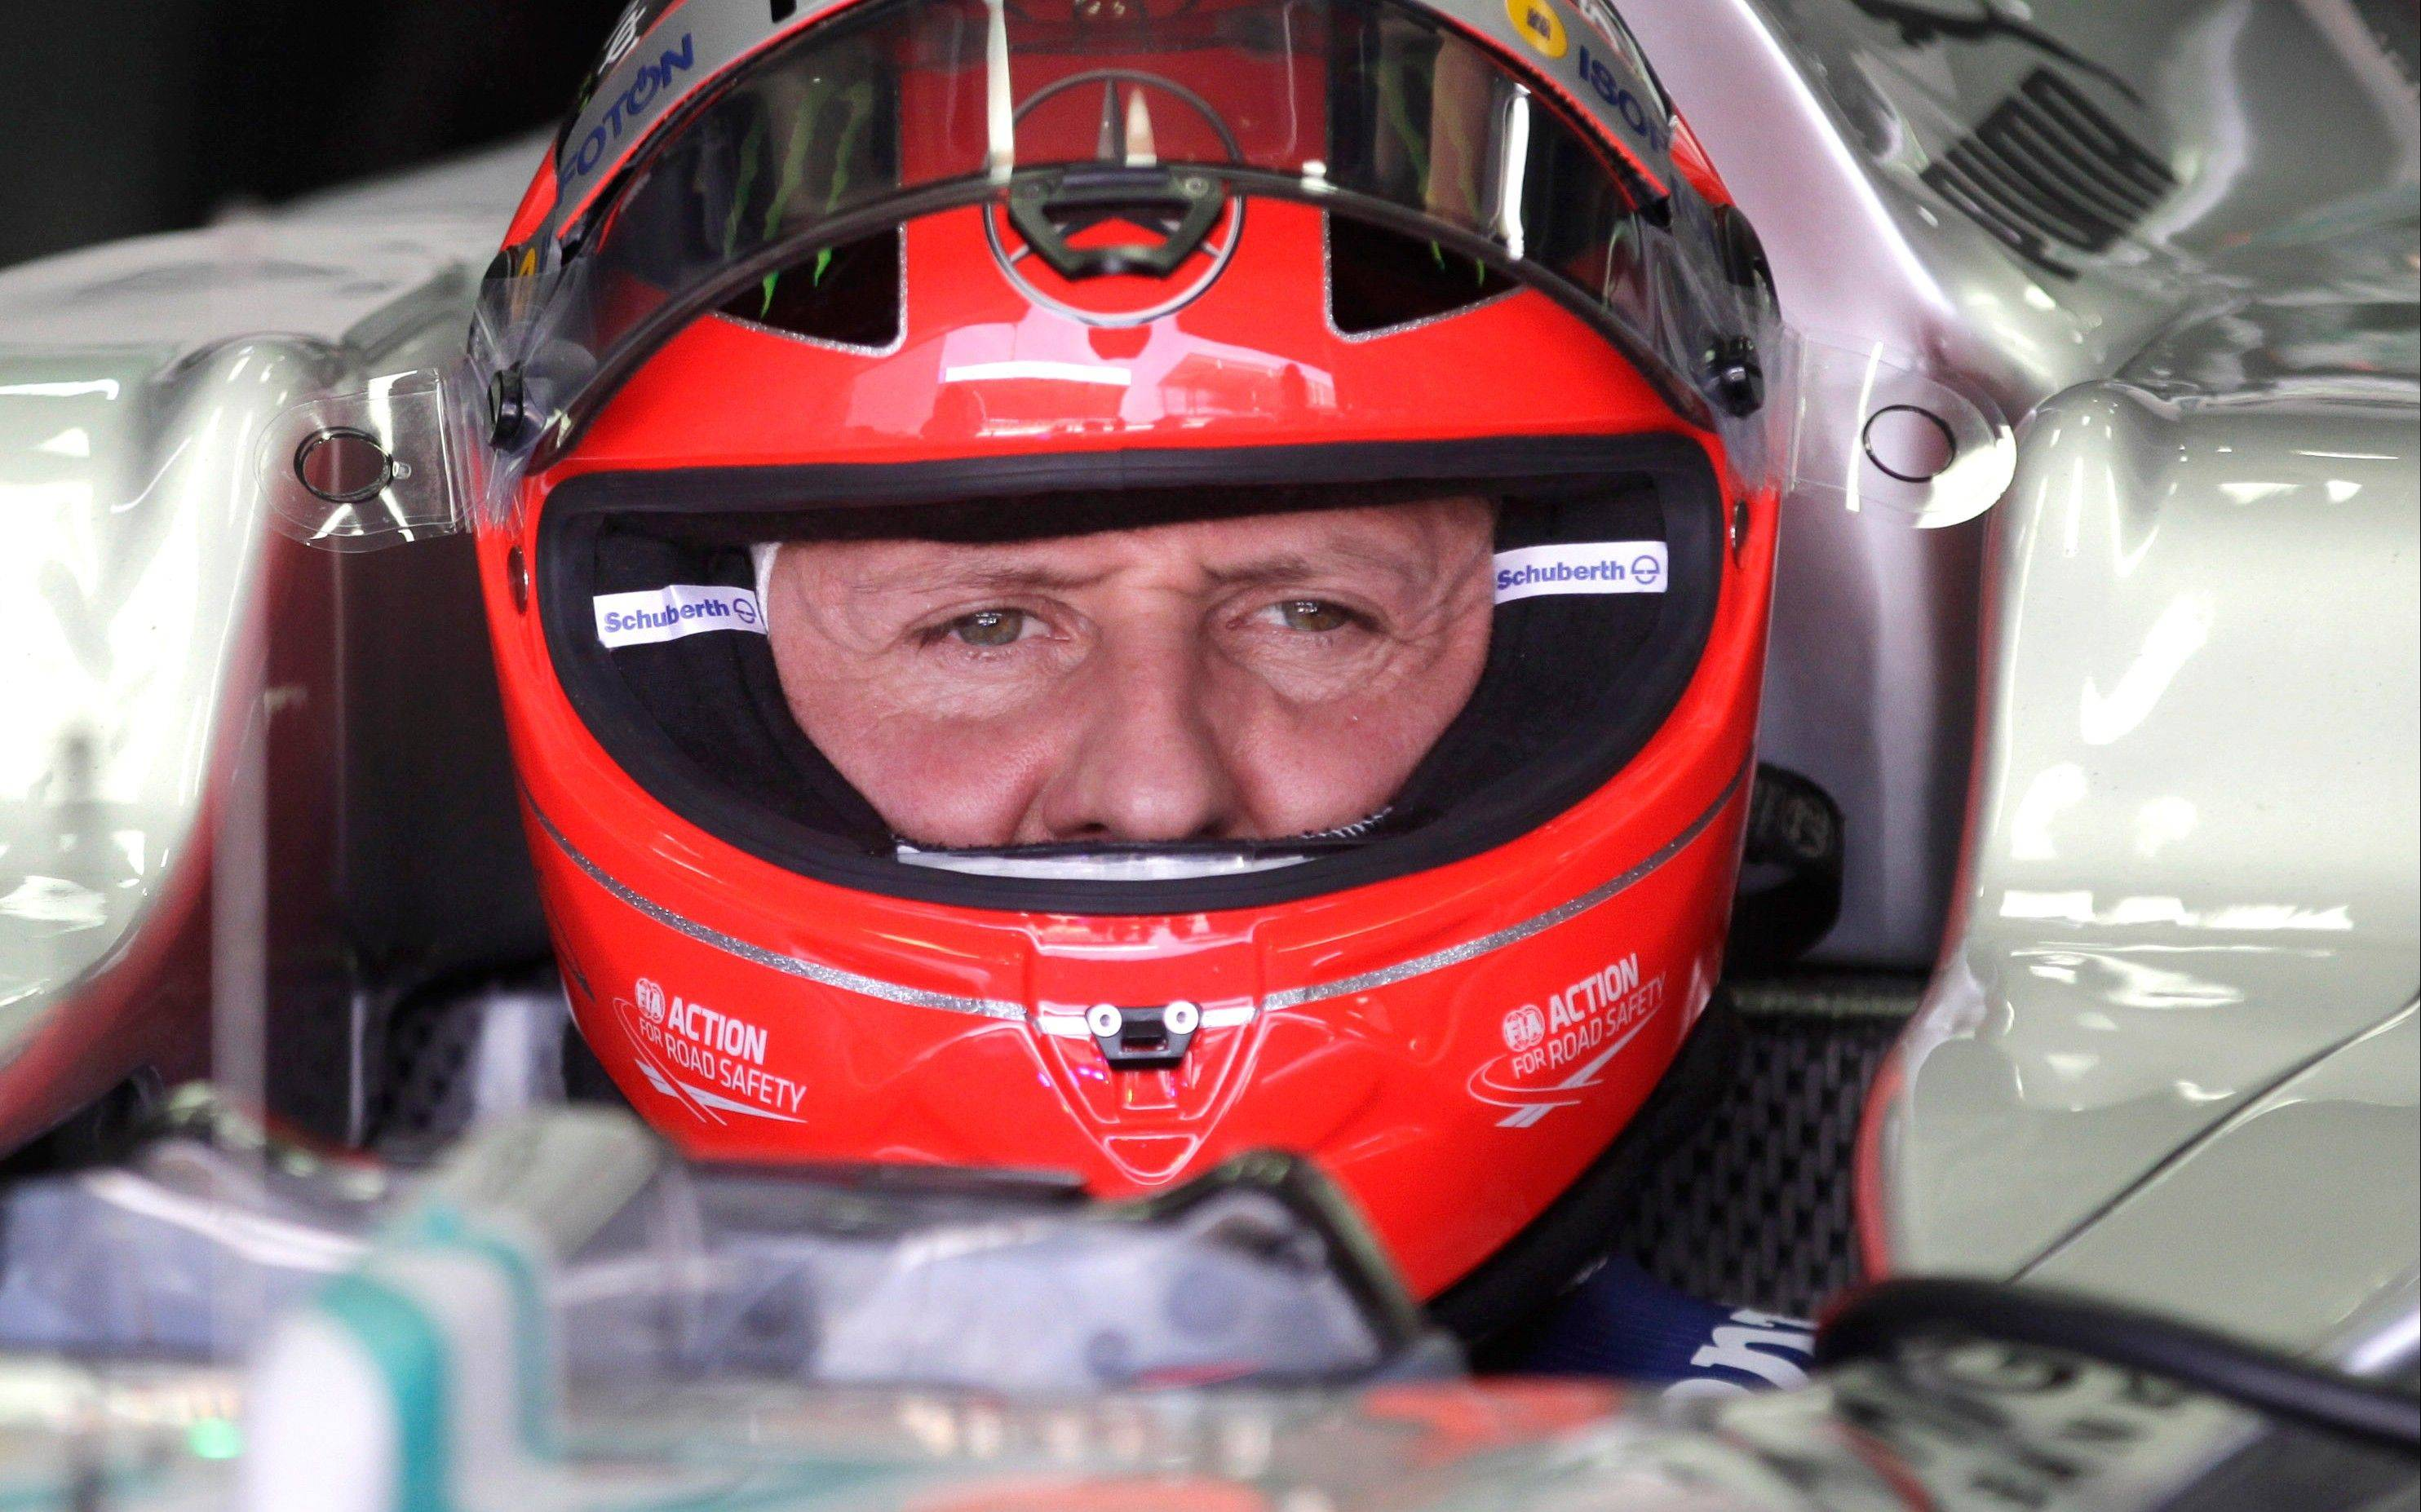 Recently retired Grand Prix driver Michael Schumacher has been in a medically induced coma in a French hospital since he suffered a serious brain injury Dec. 29 after hitting his head in a skiing accident.